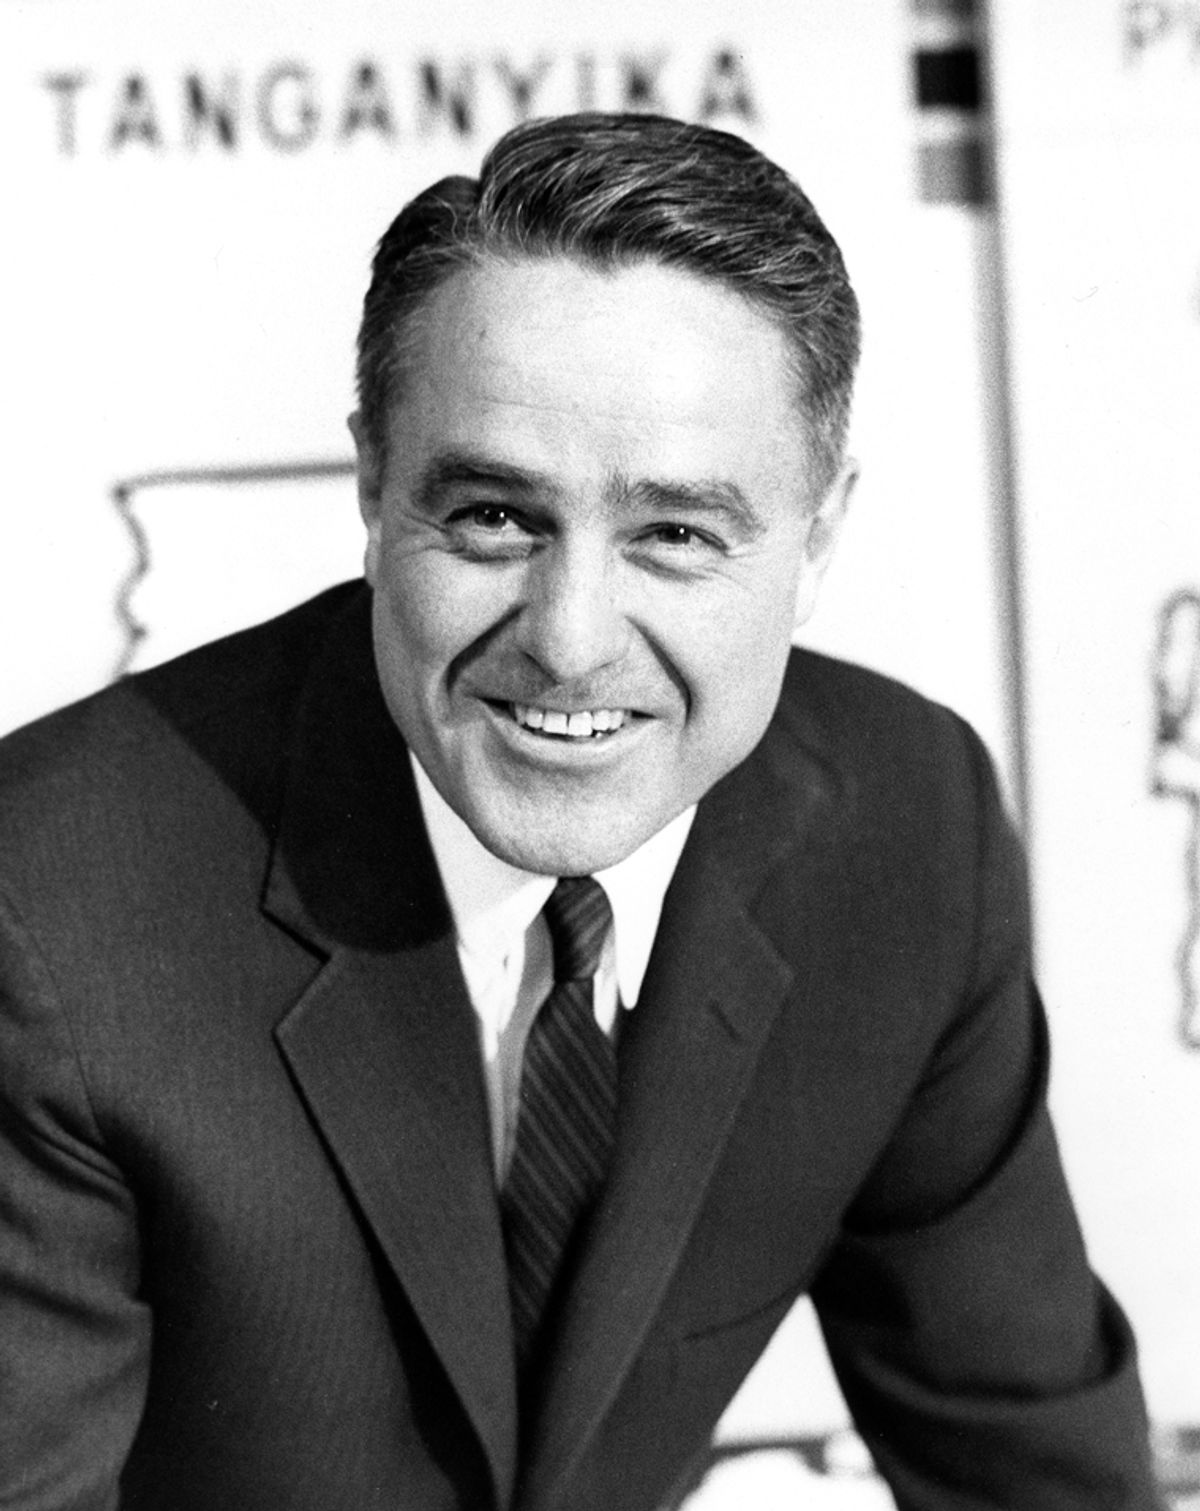 Portrait of R. Sargent Shriver (ca. 1962), first Director of the Peace Corps. Photograph in the R. Sargent Shriver Collection, John F. Kennedy Presidential Library and Museum, Boston.